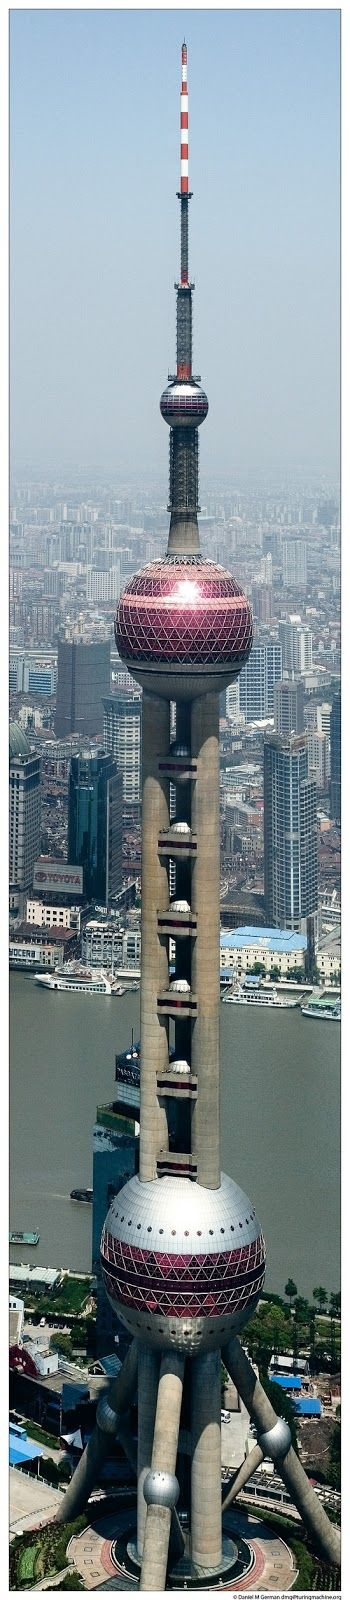 Oriental Pearl Tower - Shanghai, China.  I went up to the top of this tower, 1997